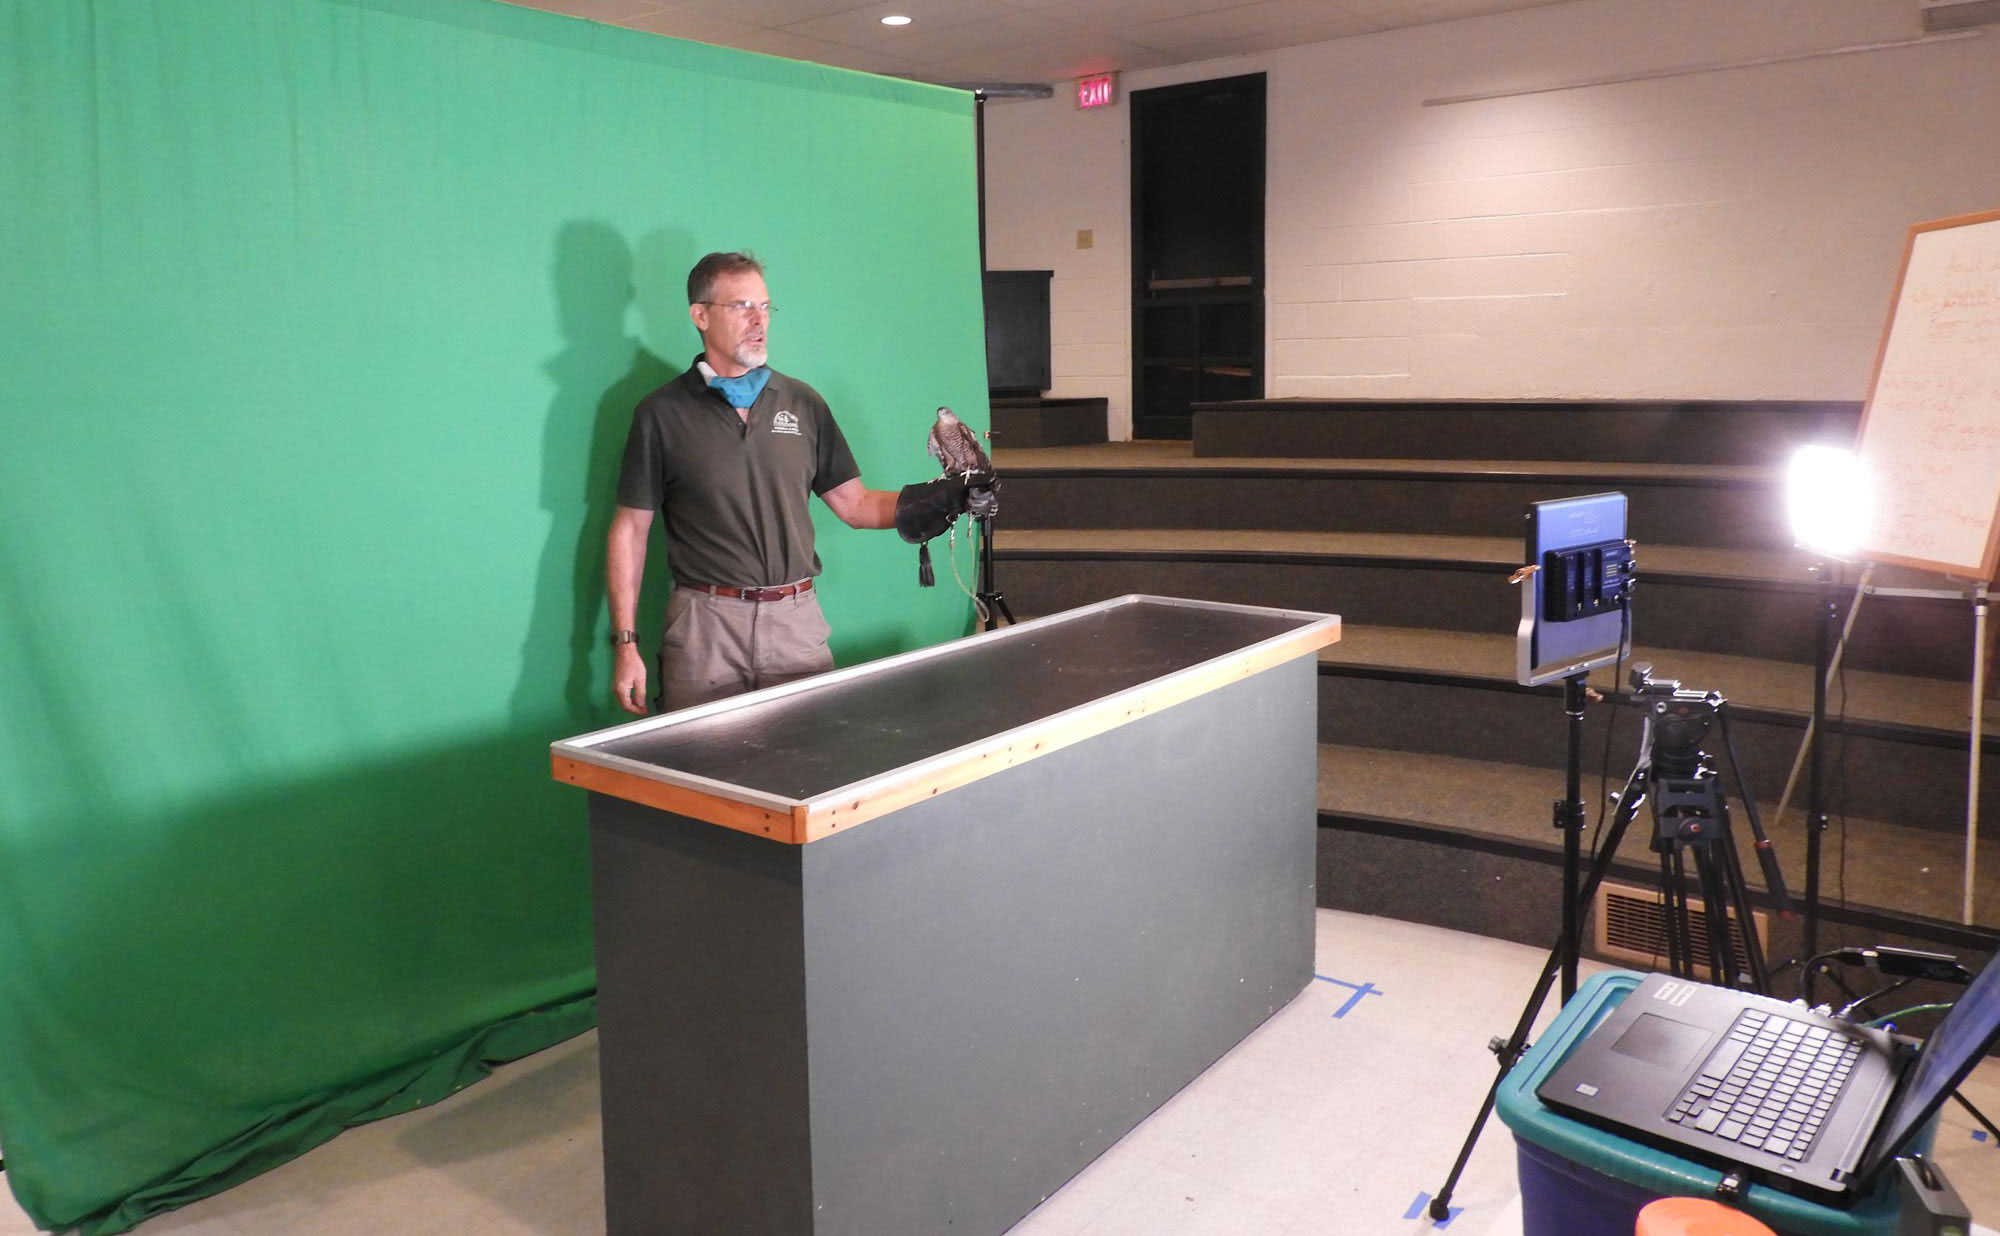 Classroom setup with naturalist, raptor over green screen.